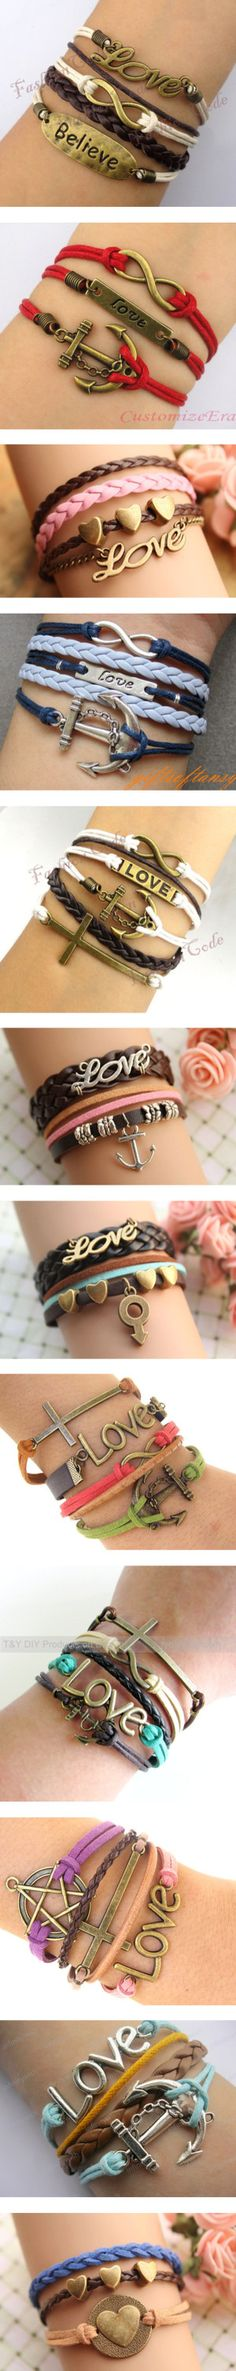 Bracelets love love love! These are sooo cute!